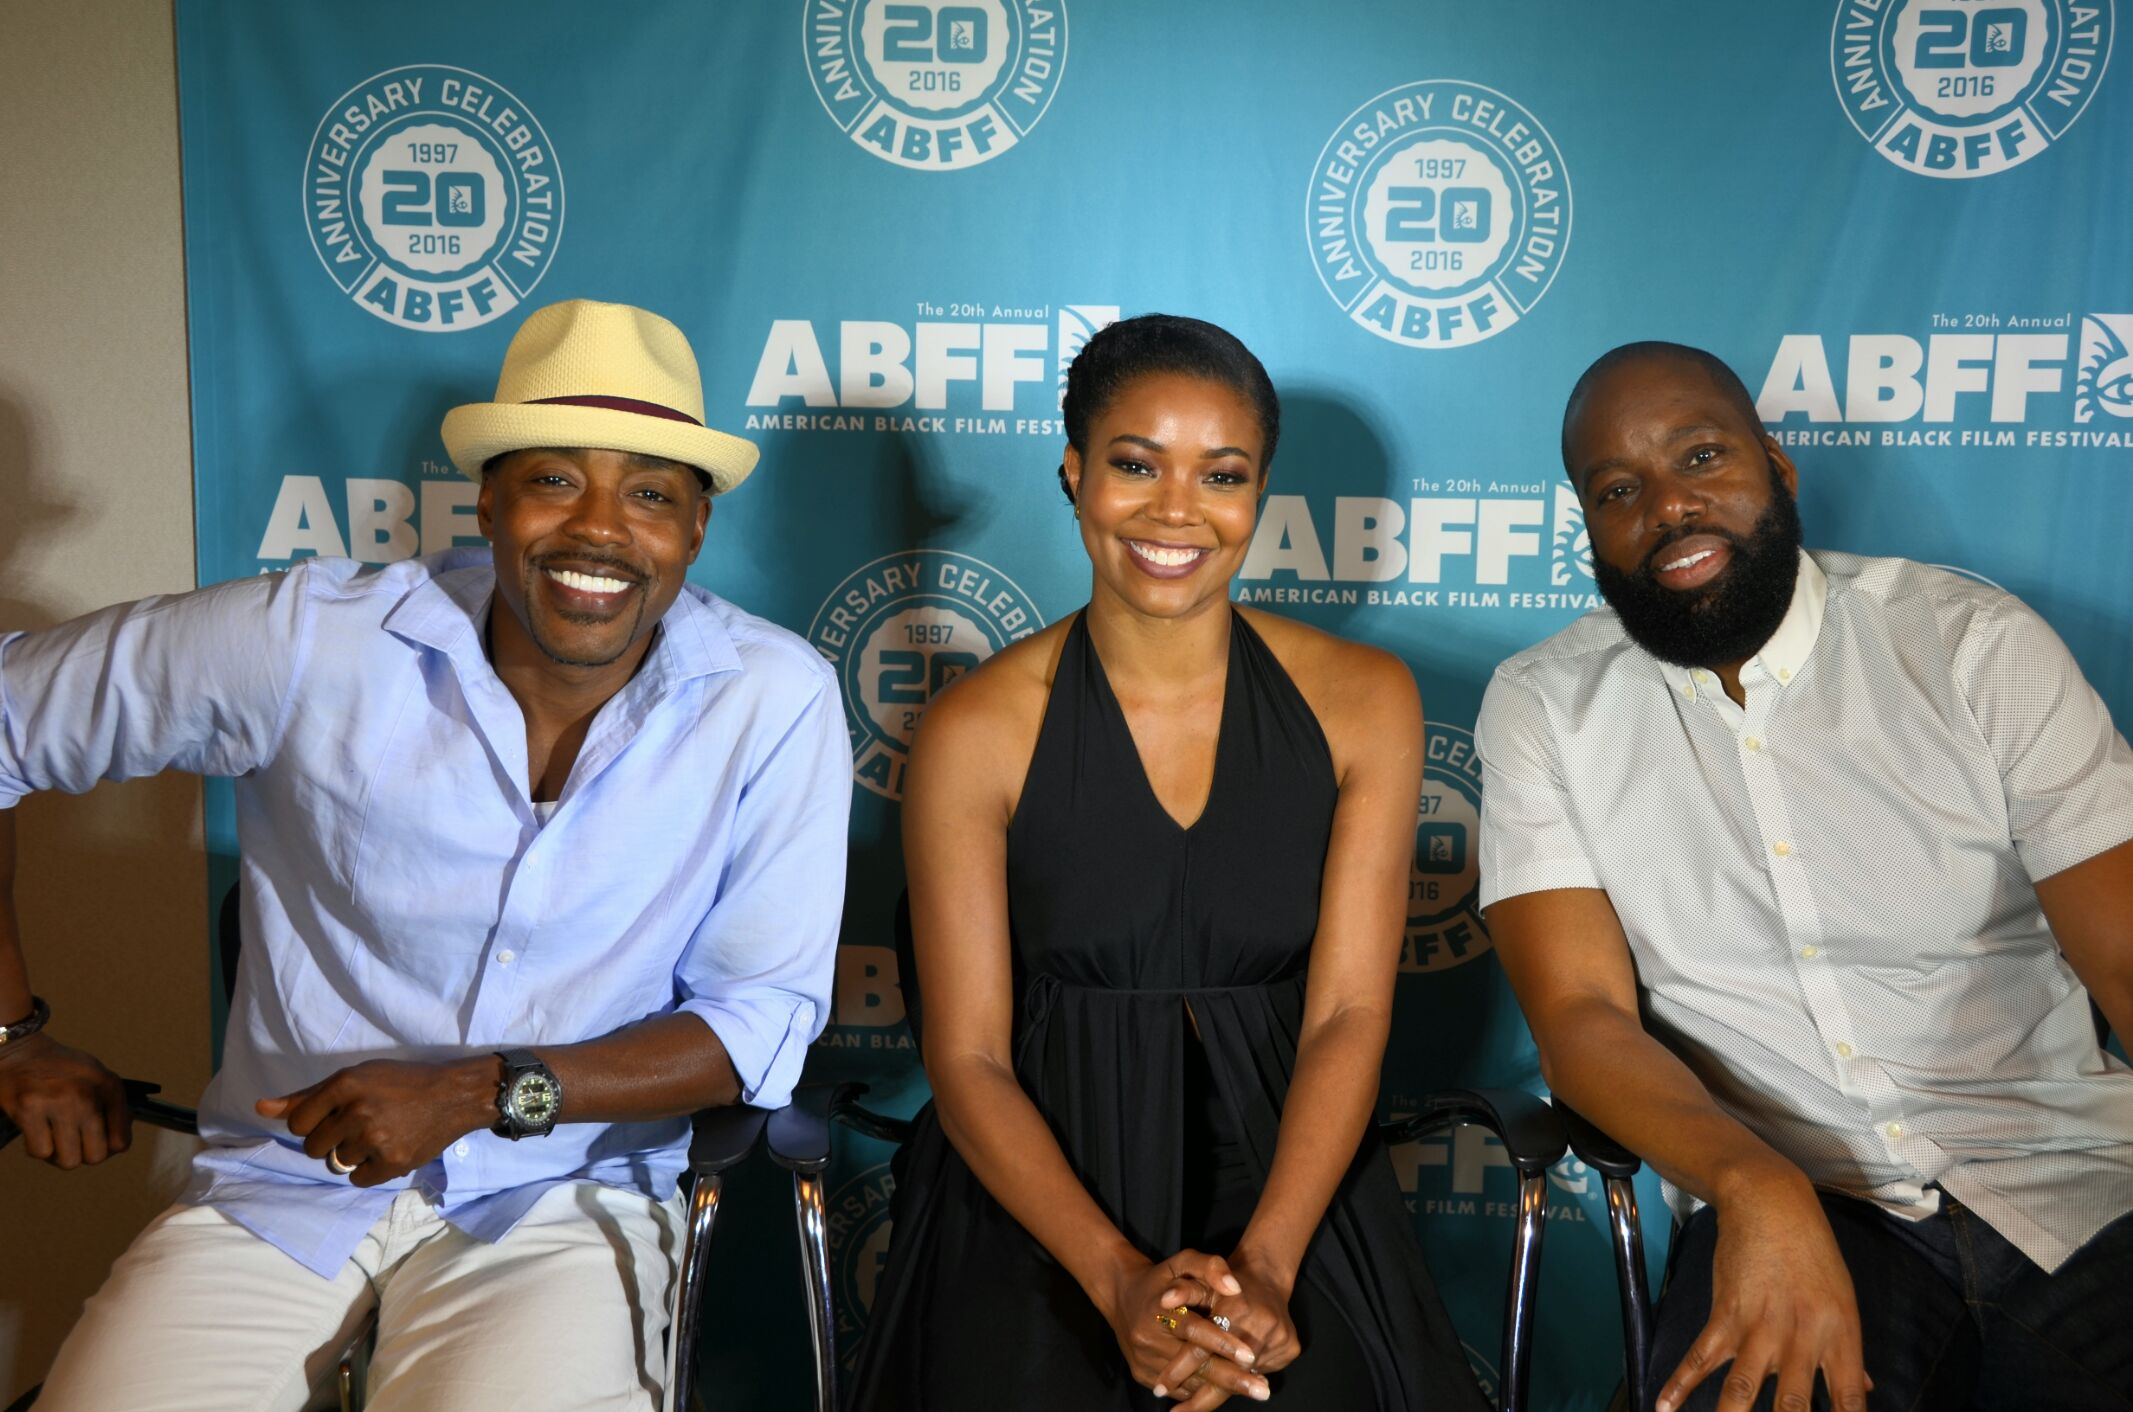 Almost Christmas Gabrielle Union.Abff 2016 Producers Will Packer Gabrielle Union And David